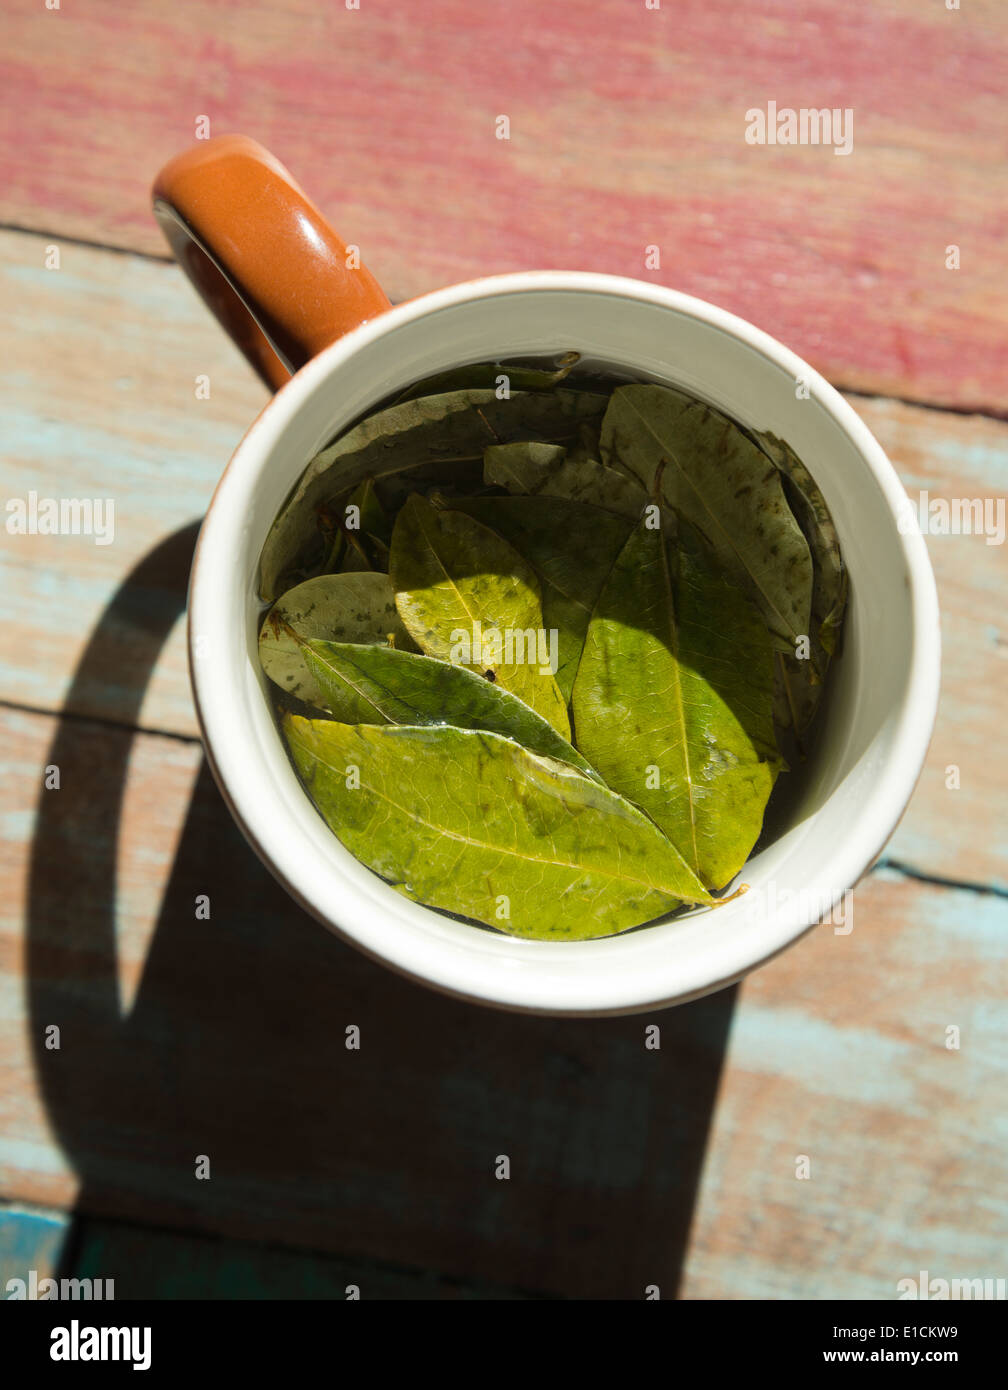 Coca leaves in hot water to make Coca tea;  which is a cure for altitude sickness in mountainous regions of South - Stock Image